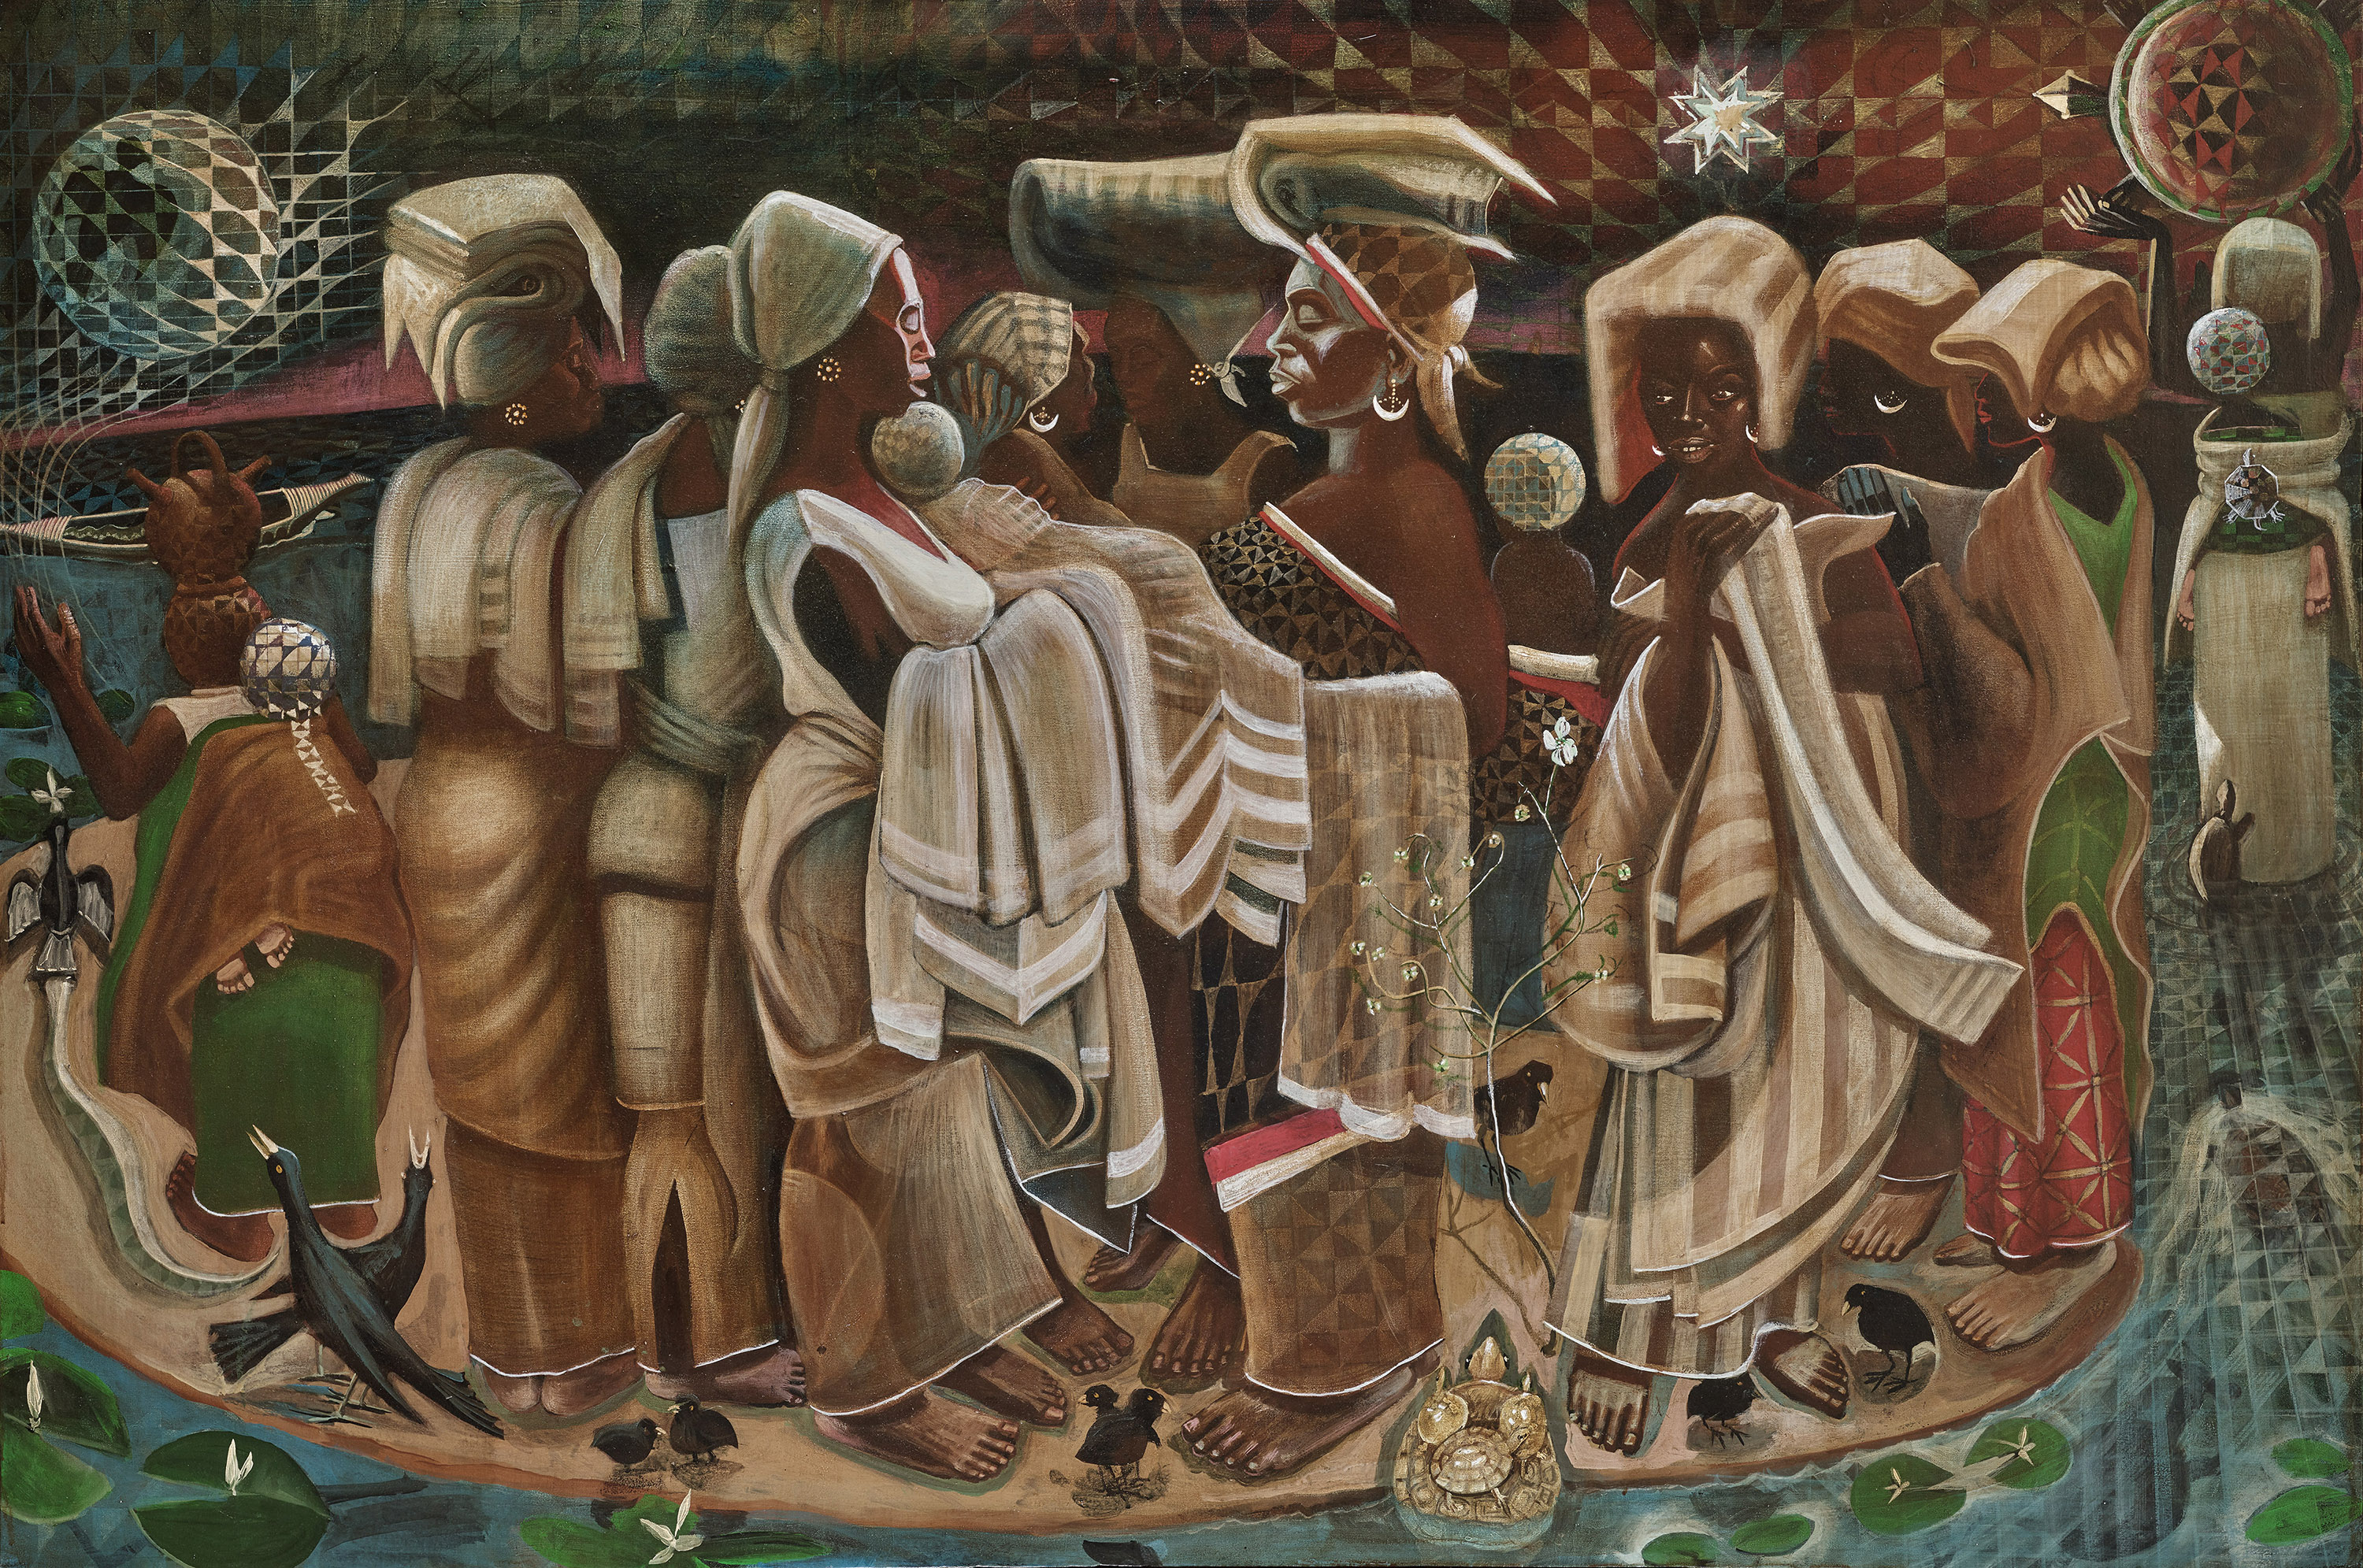 At The Wadsworth Atheneum Art By African Americans Rejoices In The Sacred The Boston Globe